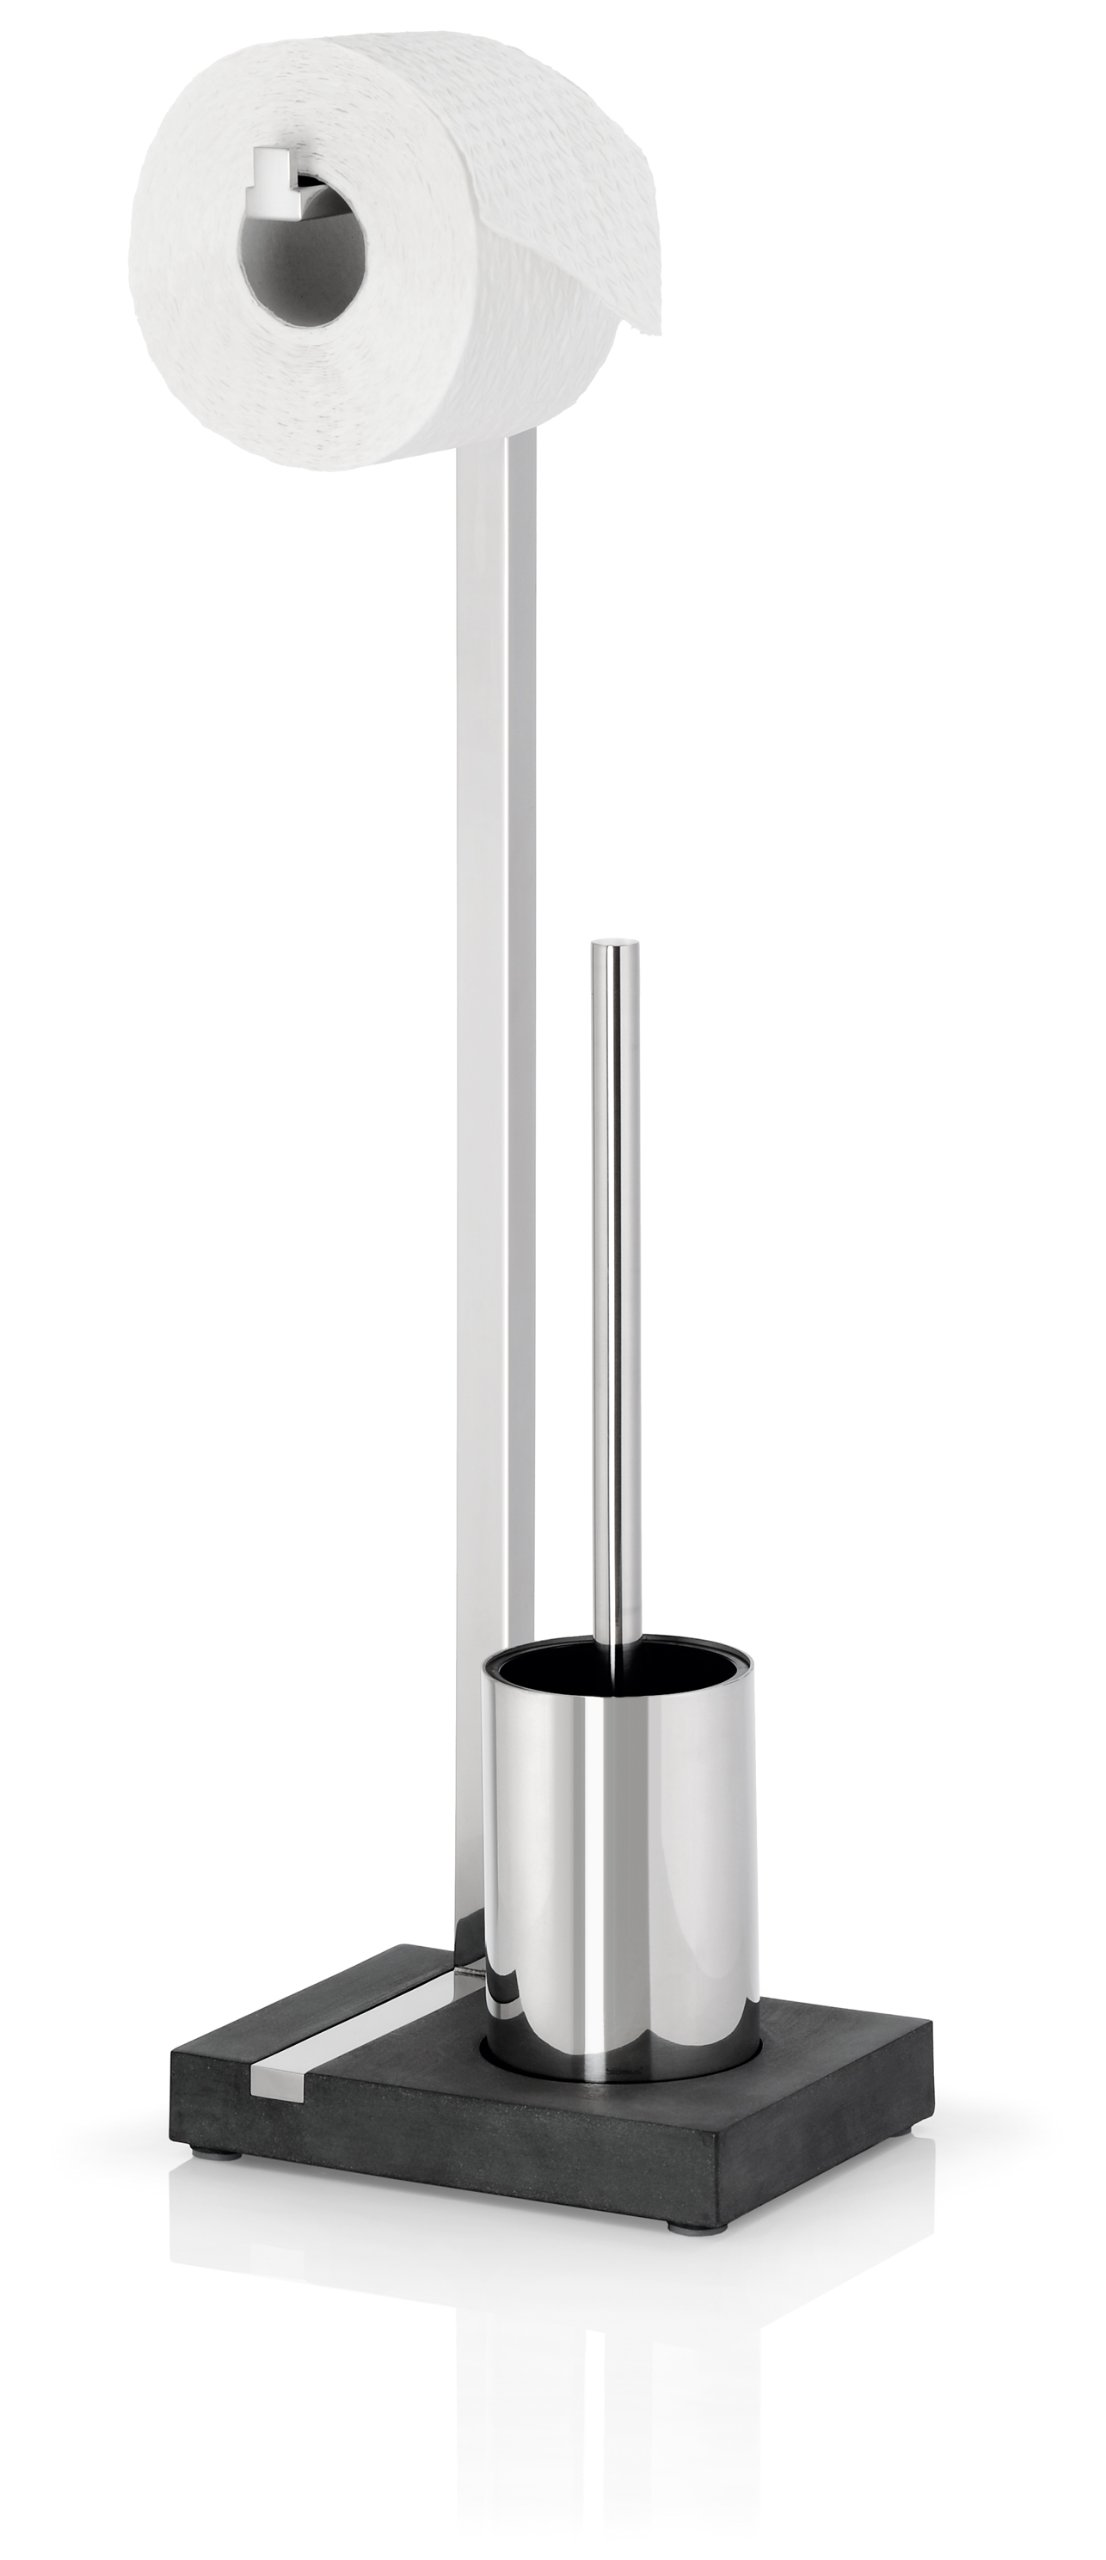 Menoto Toilet Paper Holder and Brush Finish: Polished Stainless Steel